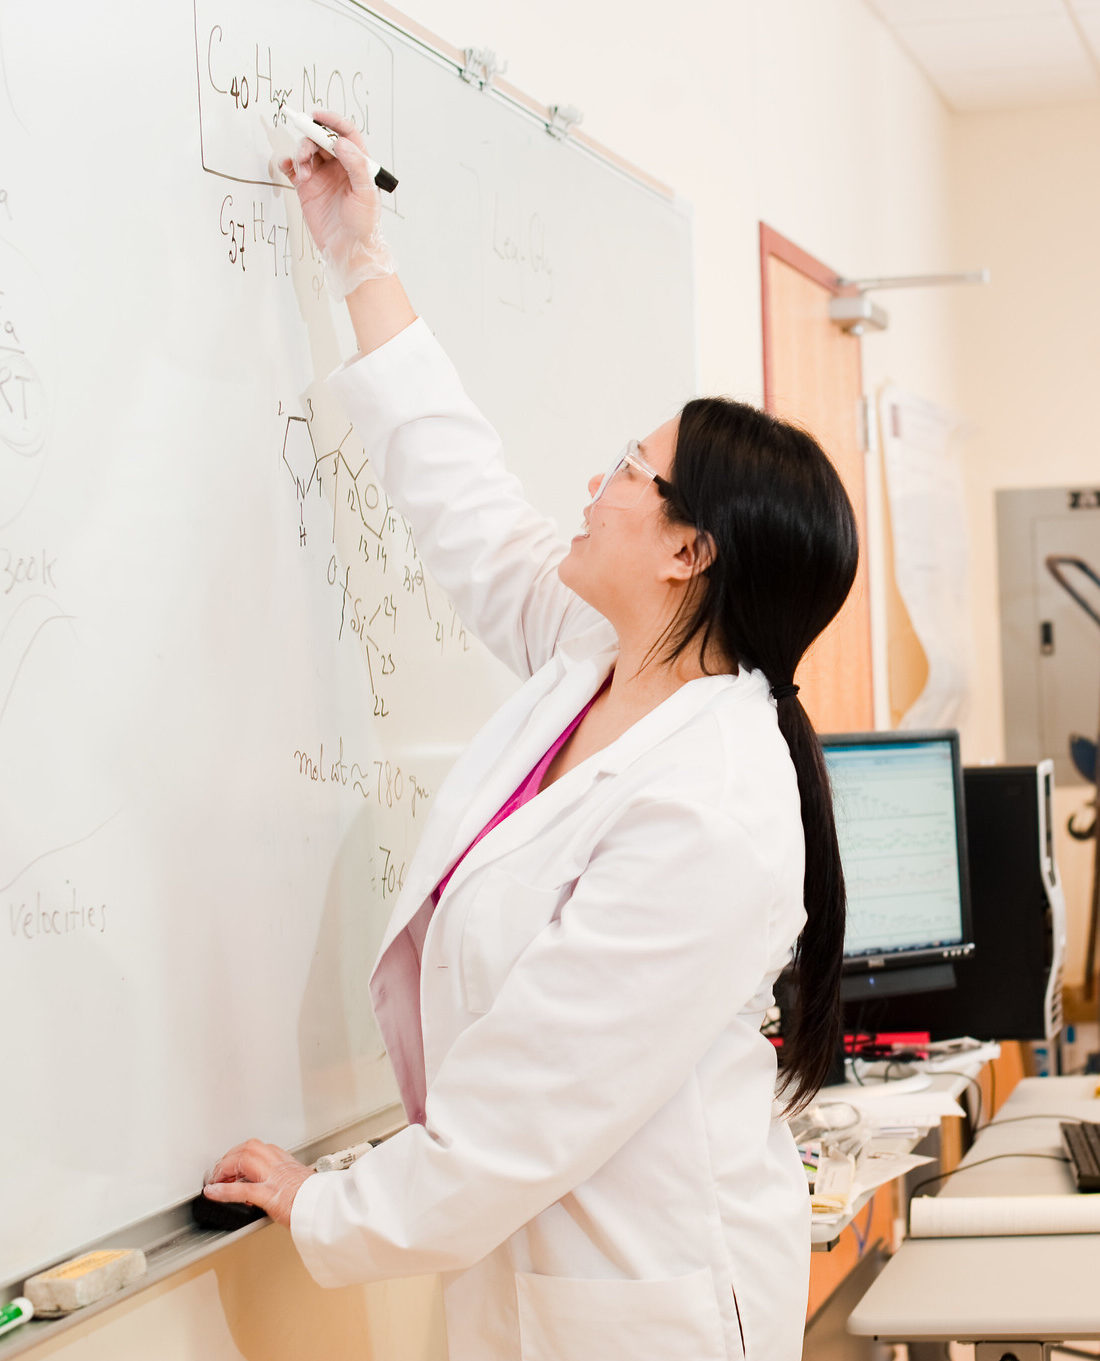 Nursing students solving a problem on a white board.